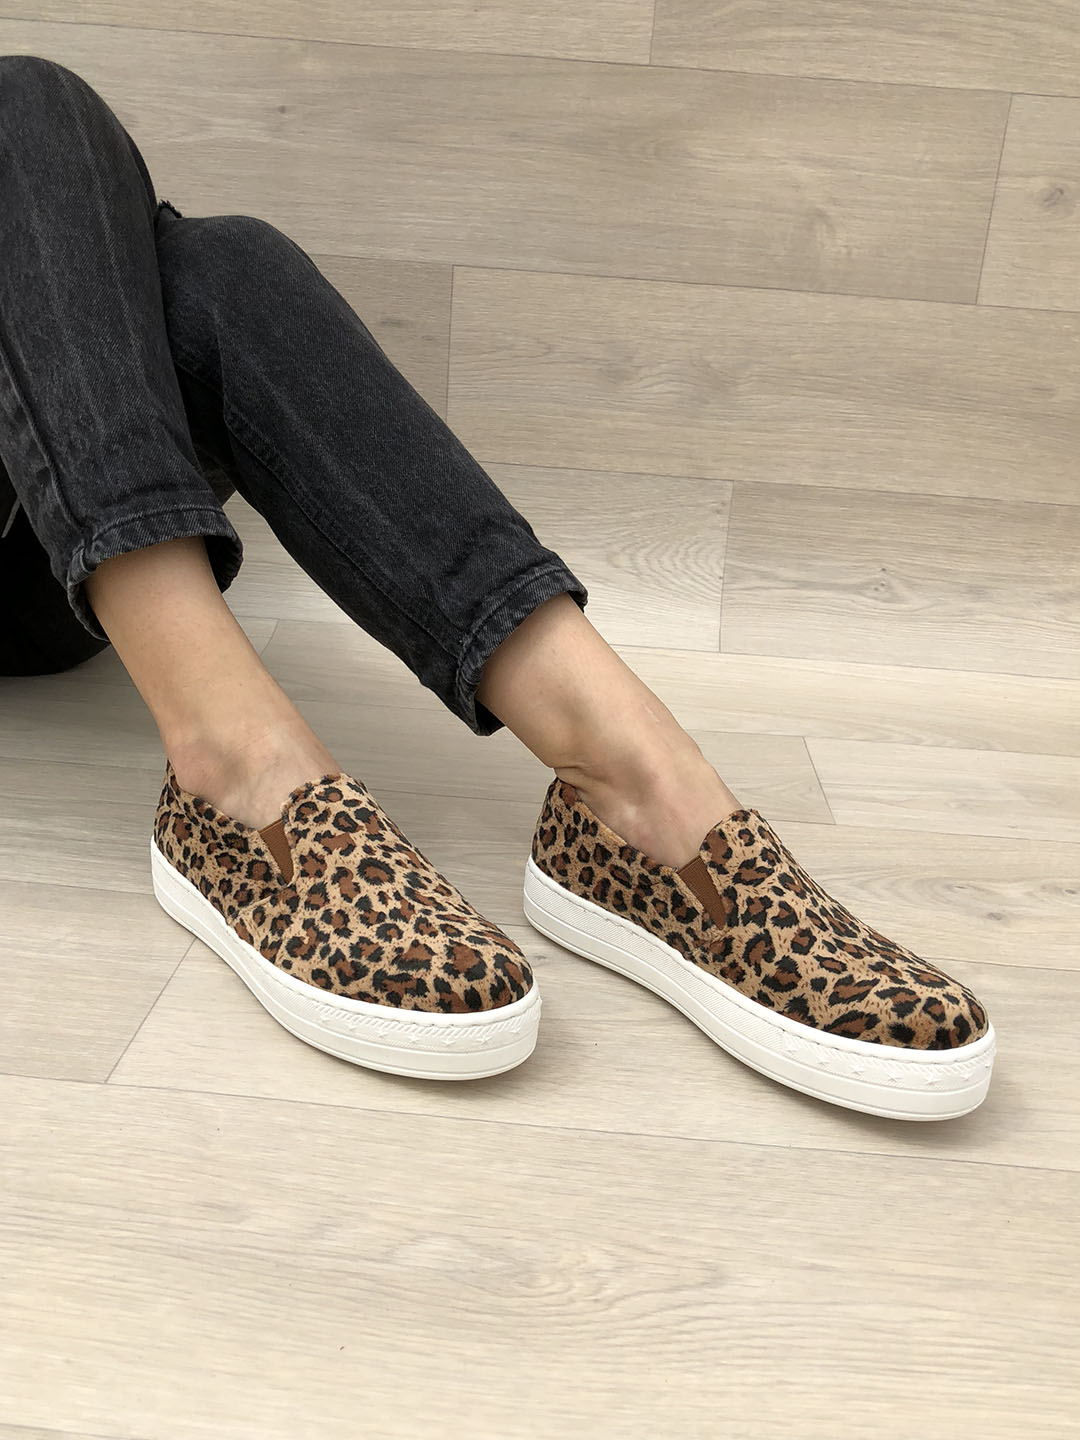 a4b3bfbd34 LEATHER SHOES    Animal Print Leather Shoes Vans Style - Christina ...